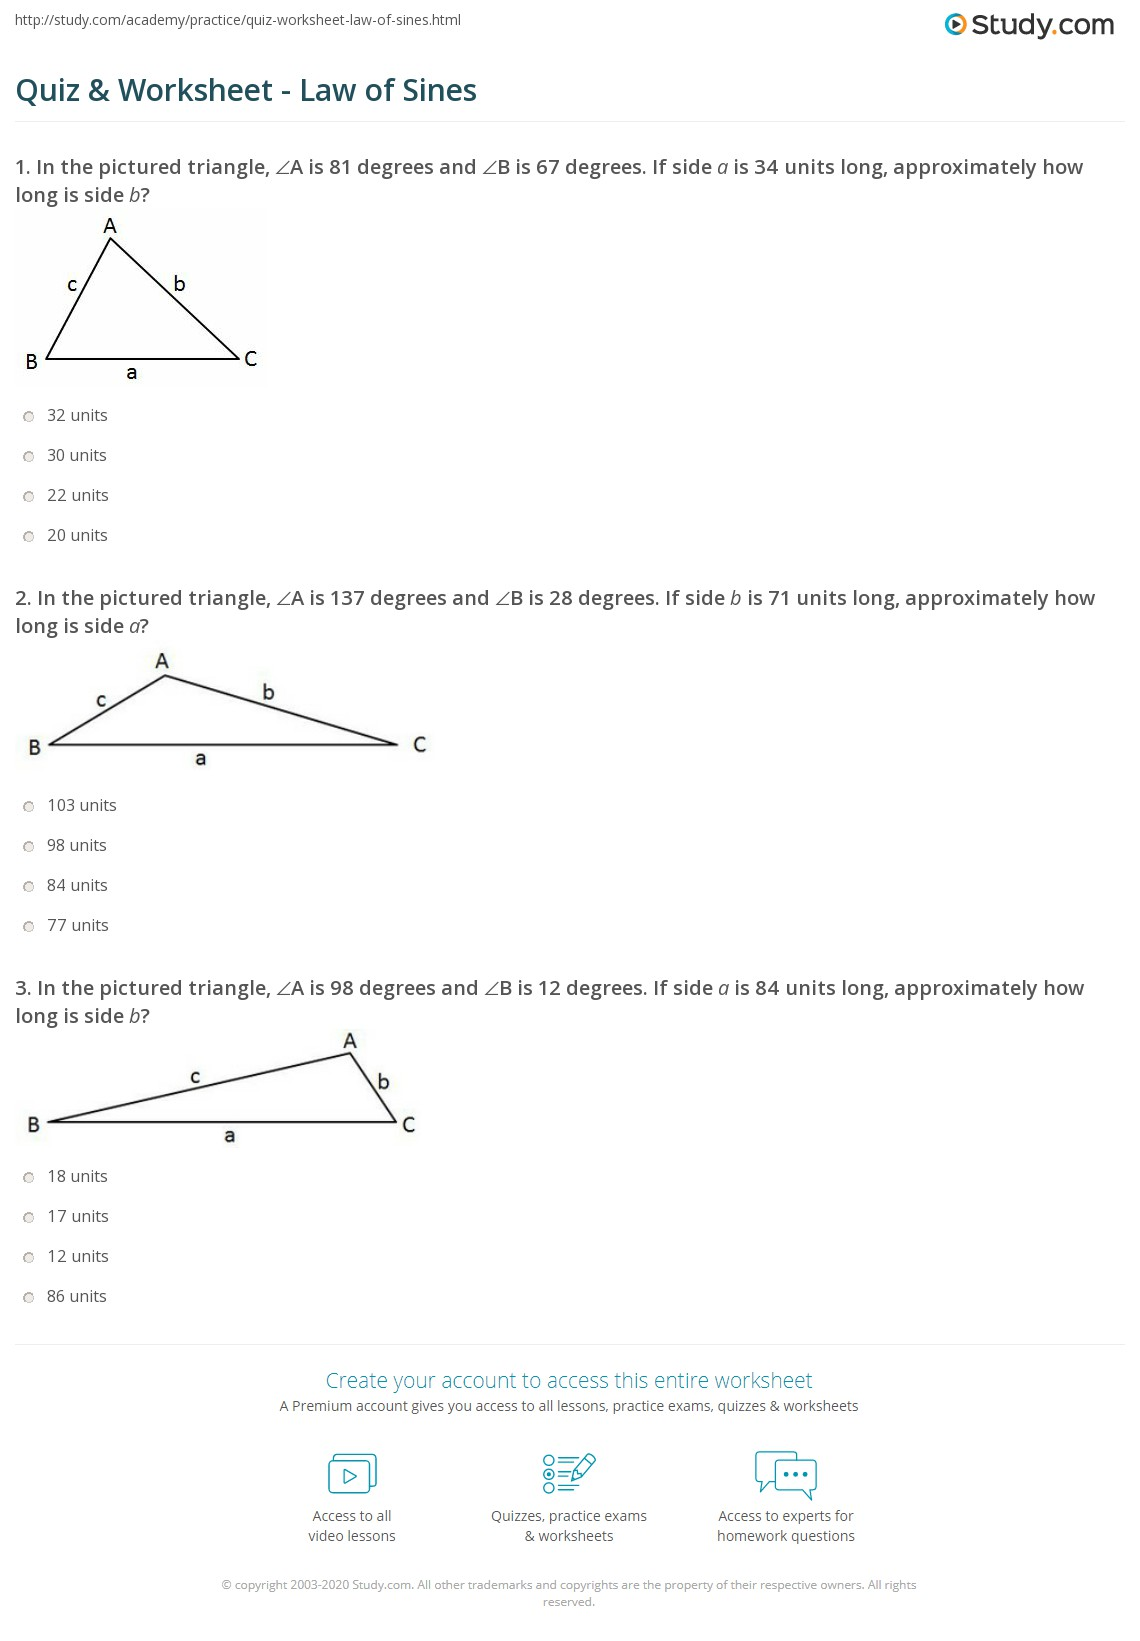 Quiz & Worksheet - Law of Sines | Study.com